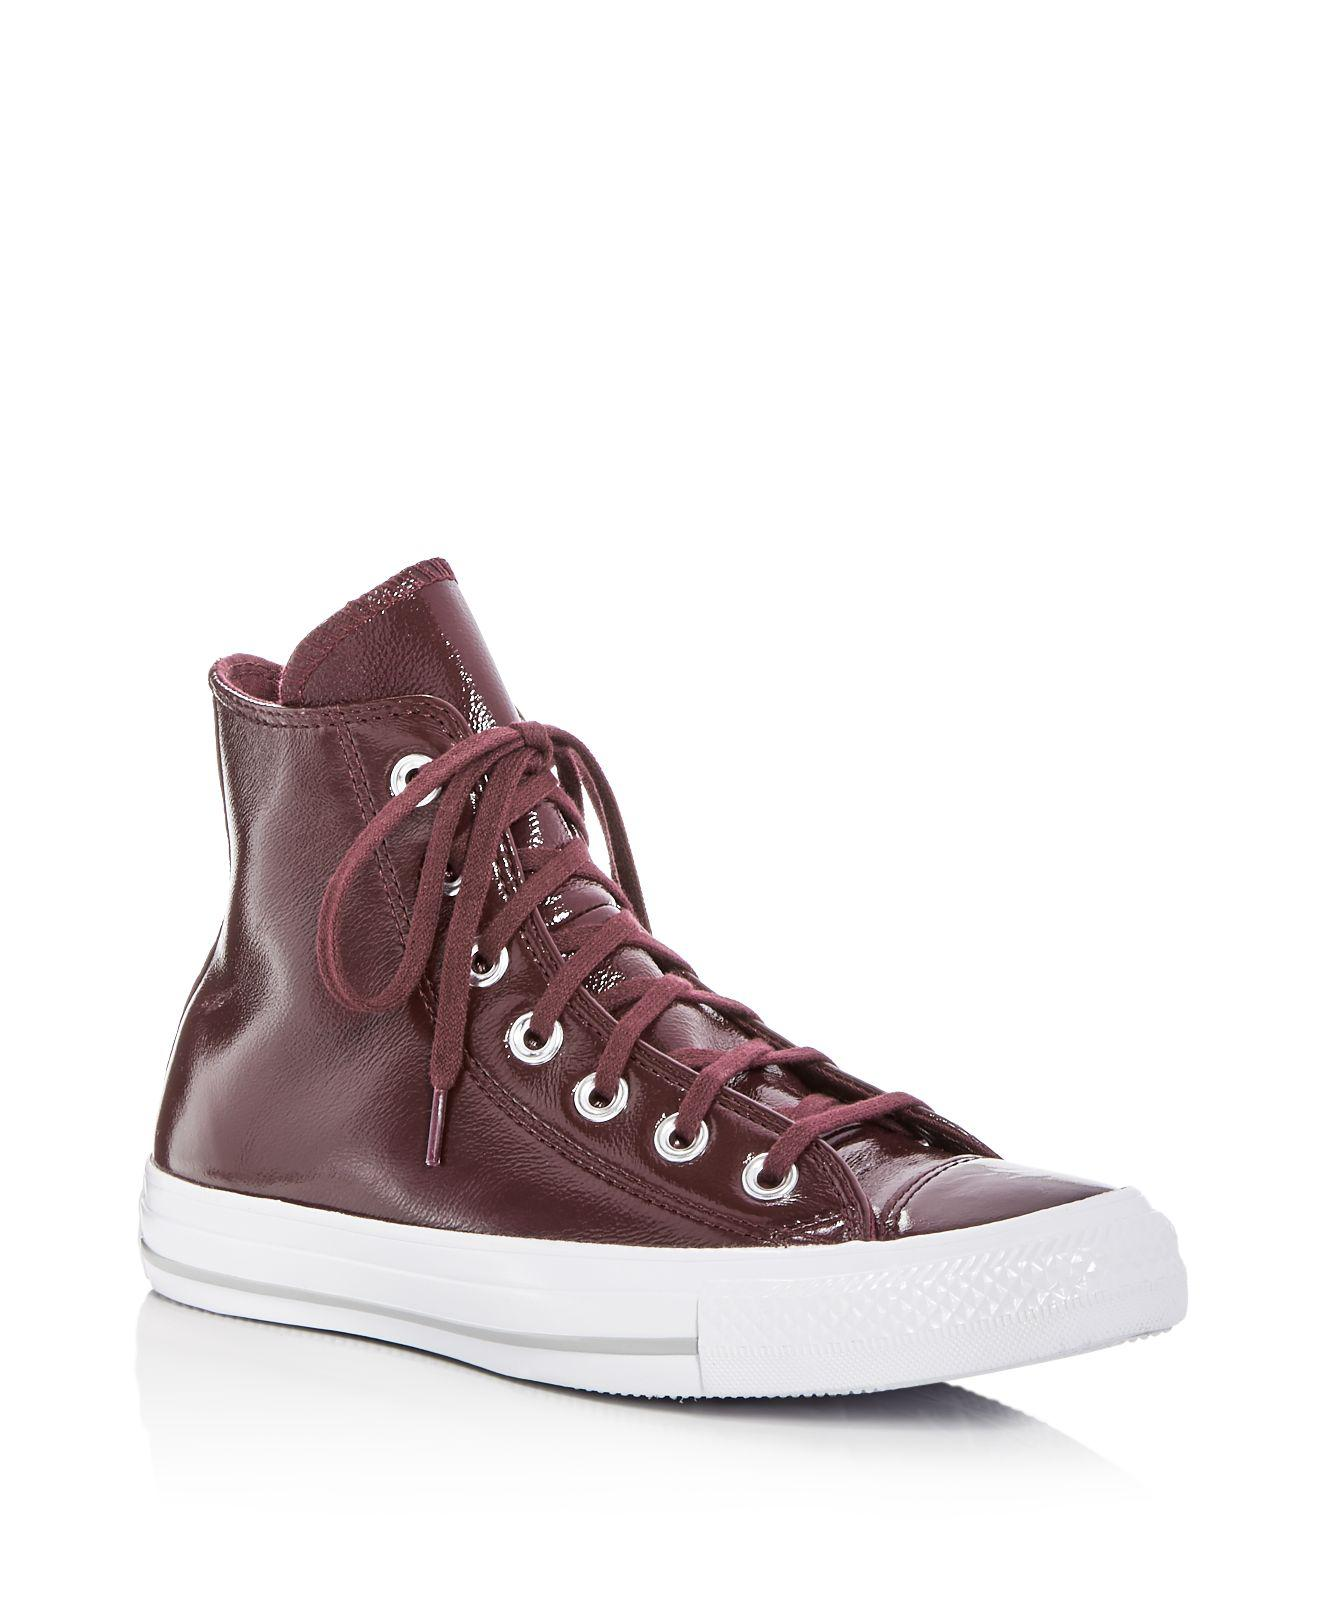 fac60020cf7f Gallery. Previously sold at  Bloomingdale s · Women s Converse Chuck Taylor  ...